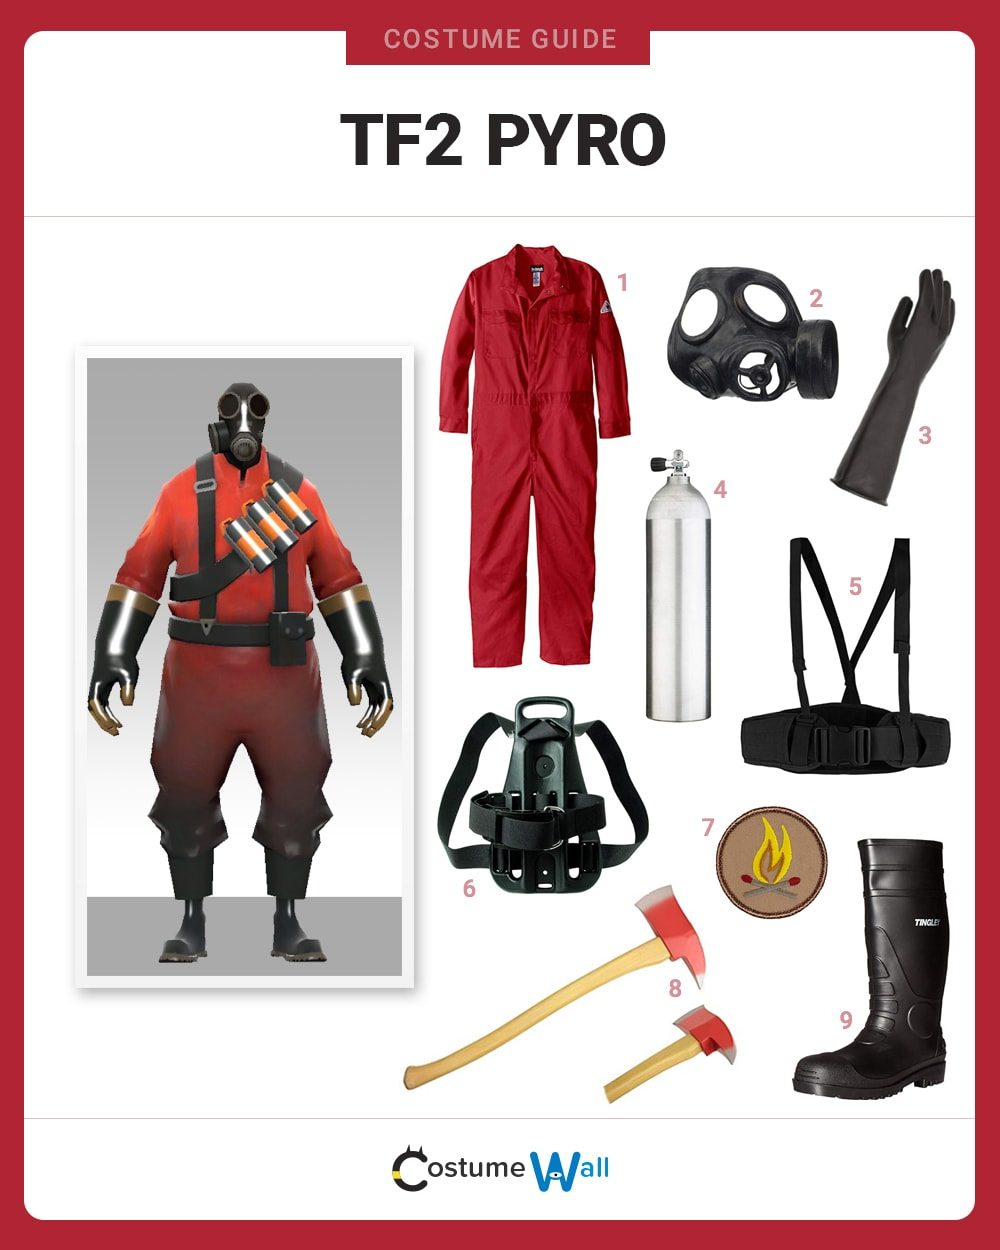 TF2 Pyro Costume Guide